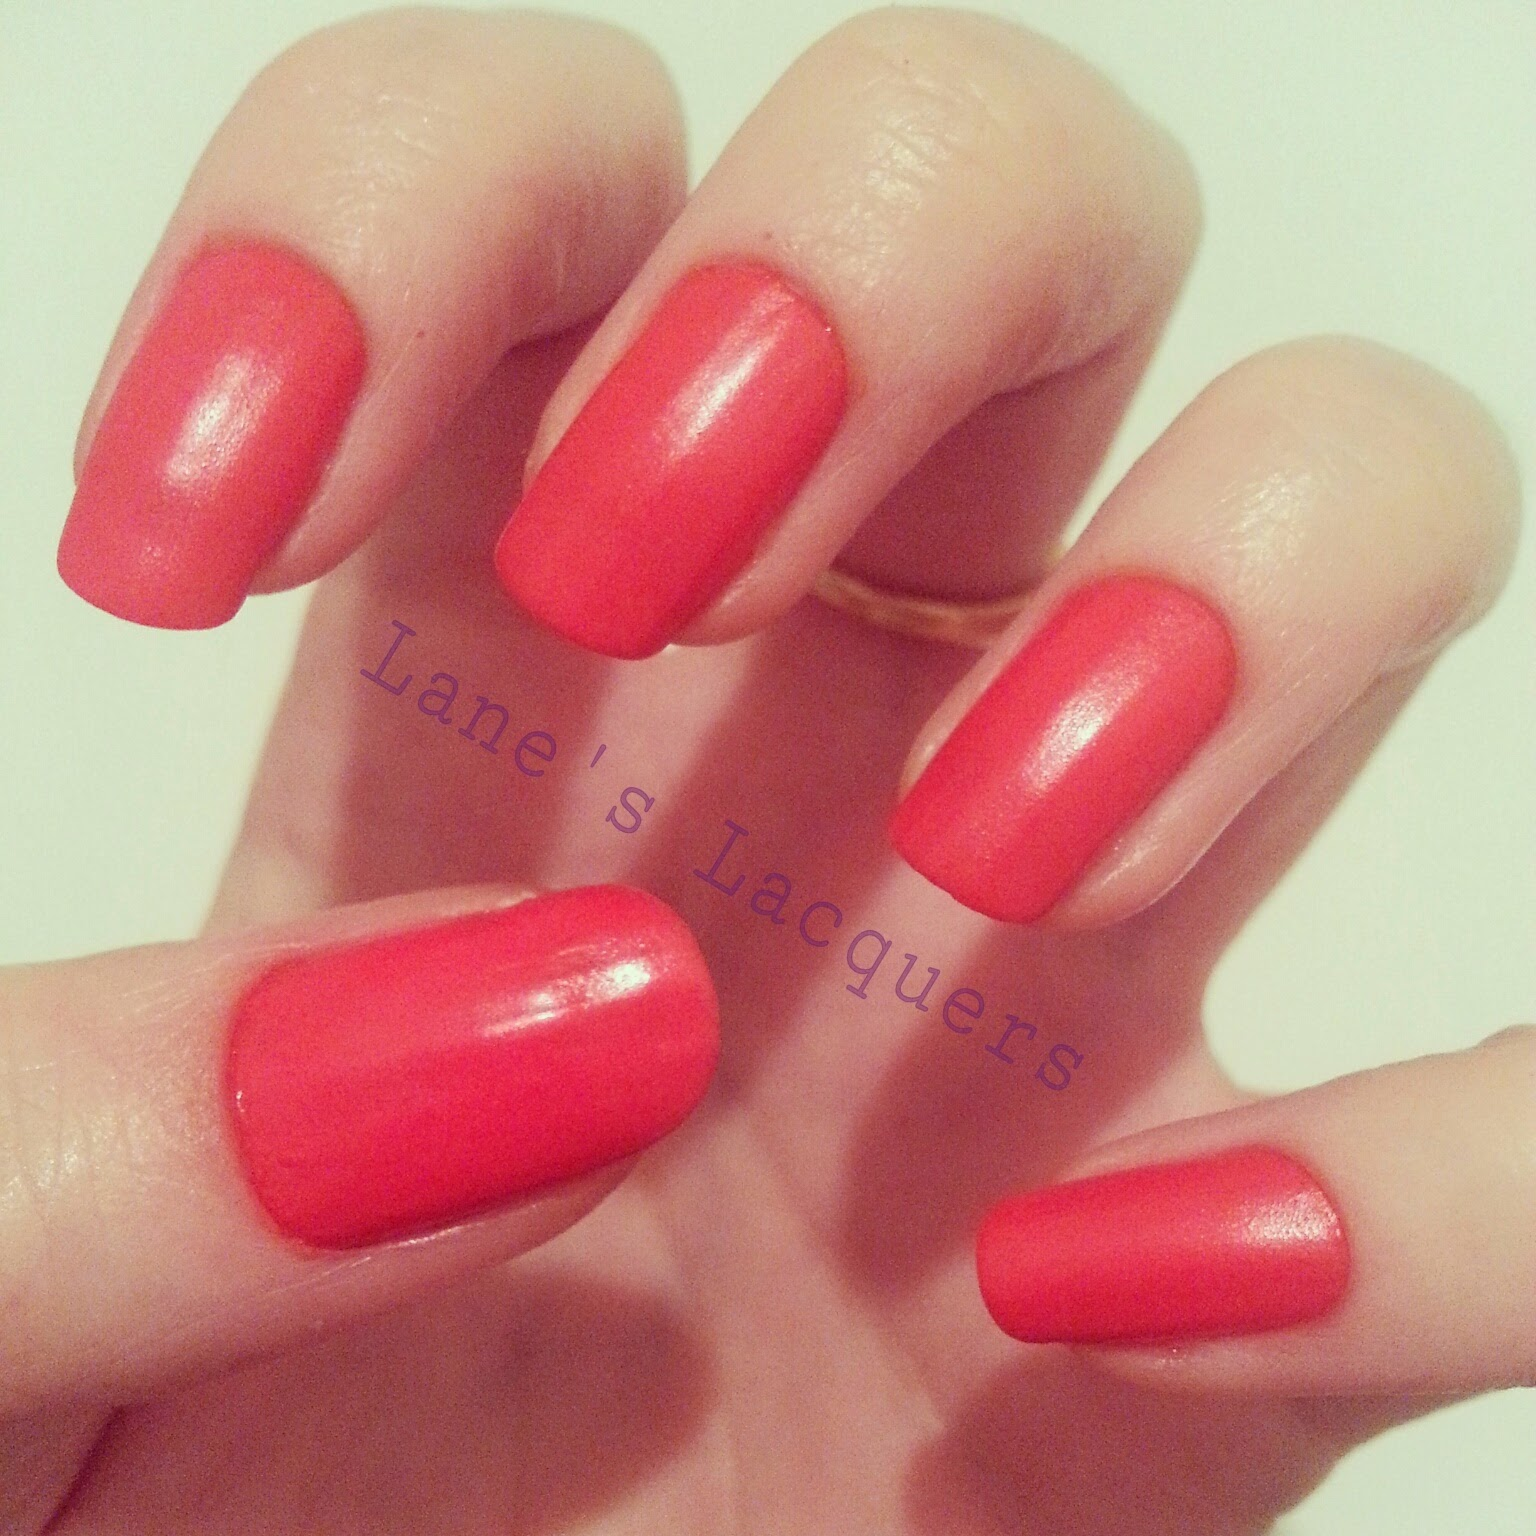 barry-m-copacabana-swatch-manicure (1)